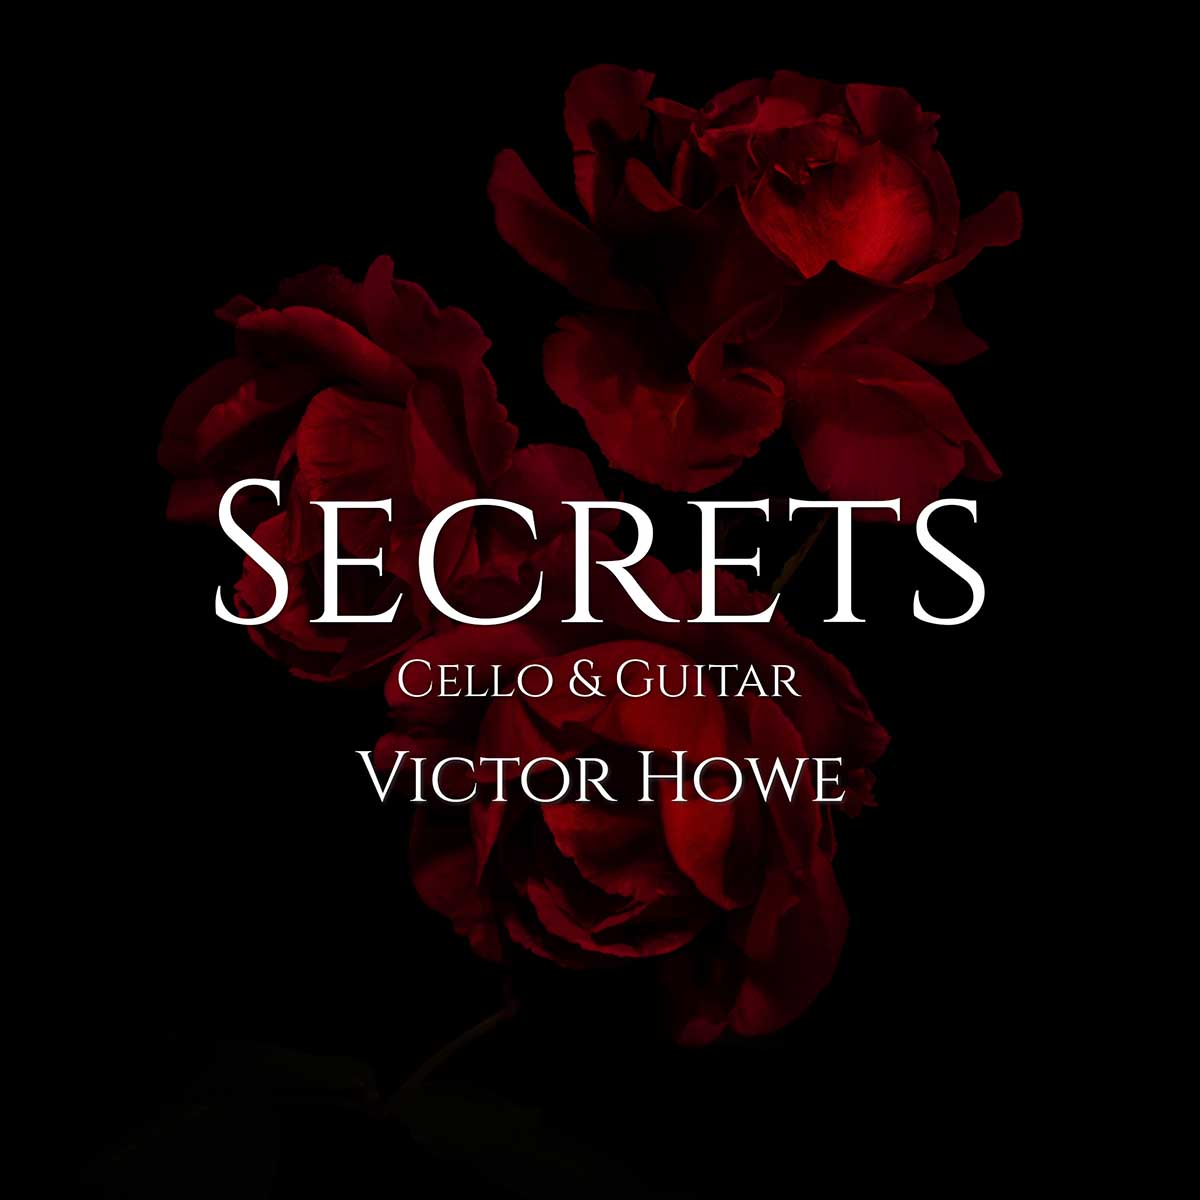 Secrets (Cello & Guitar) by Victor Howe Cello & Classical Guitar Instrumental